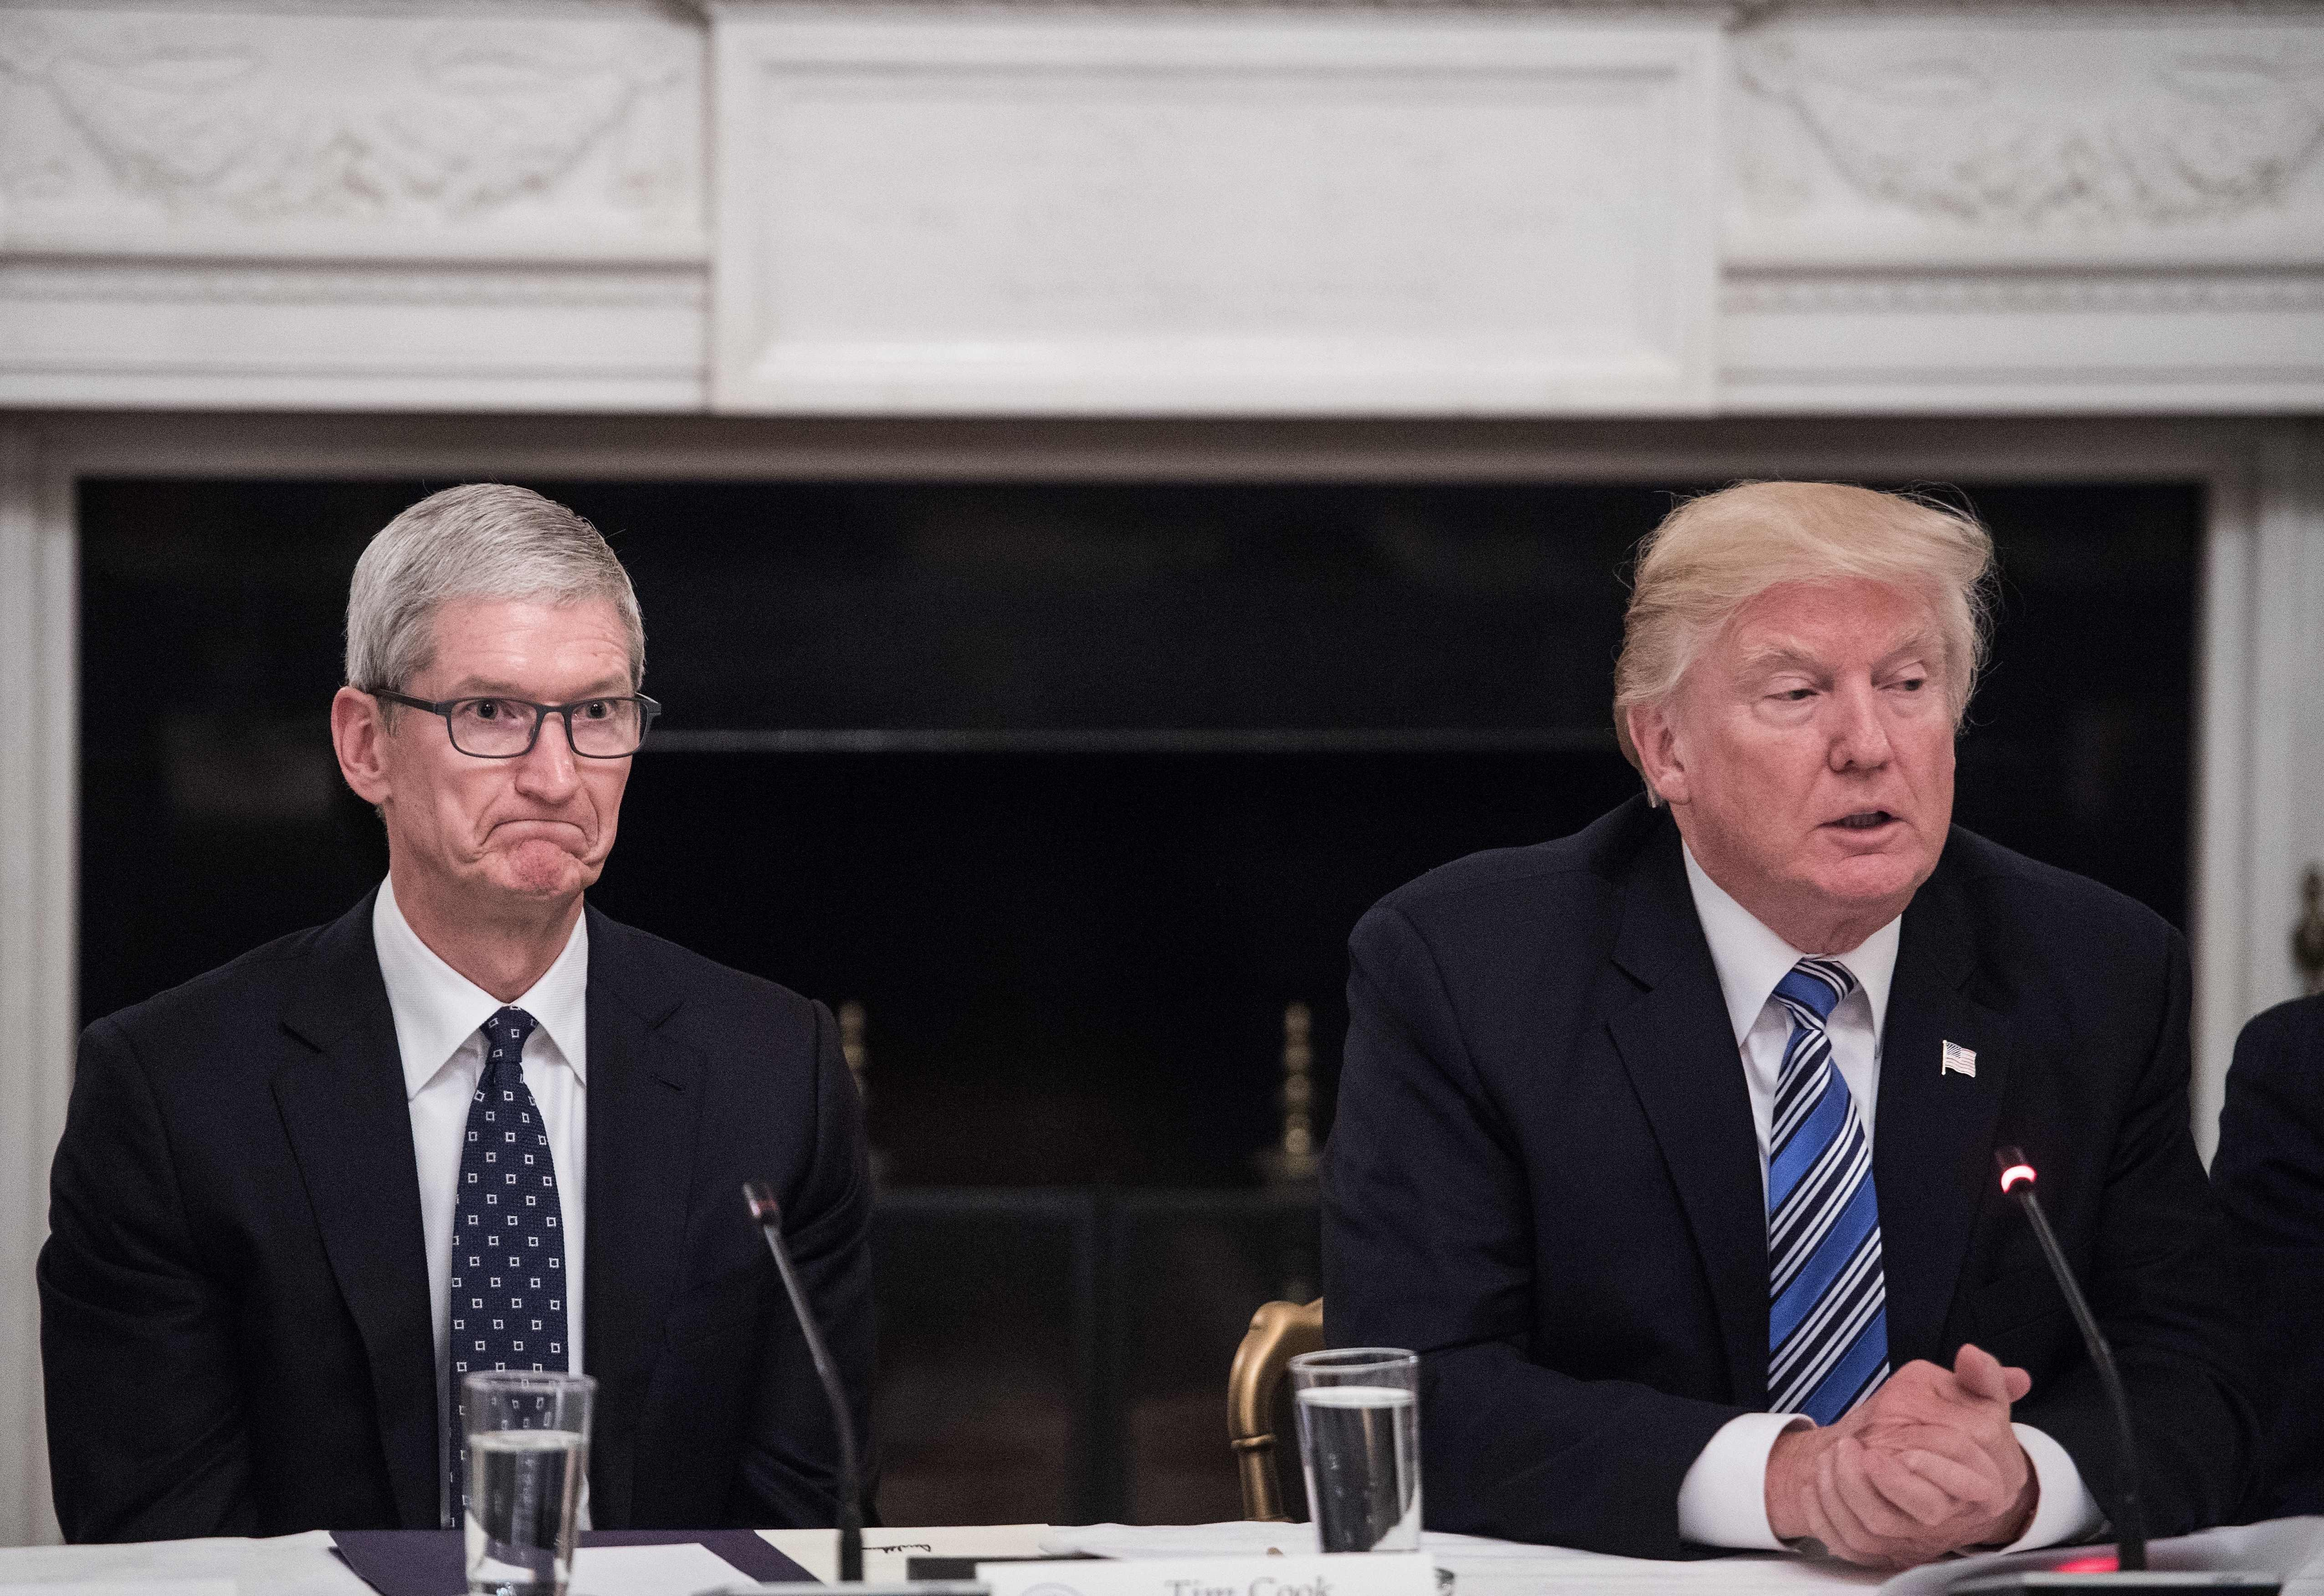 Tech Leaders Met With Trump, And The Looks On Their Faces Said It All